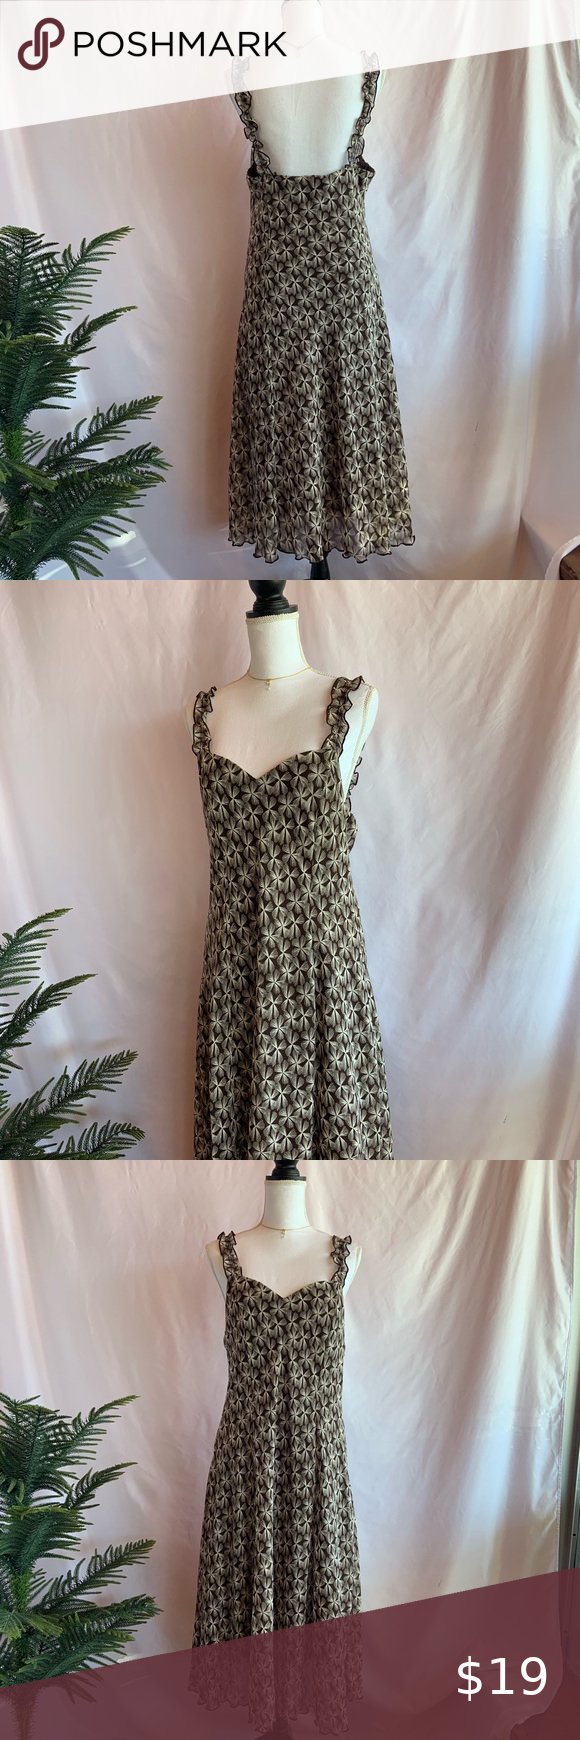 Connected Apparel Summer Dress Size 16 Connected Apparel Brand Beautiful Brown Color With White Print All Over Ruffle Connected Apparel Dresses Summer Dresses [ 1740 x 580 Pixel ]